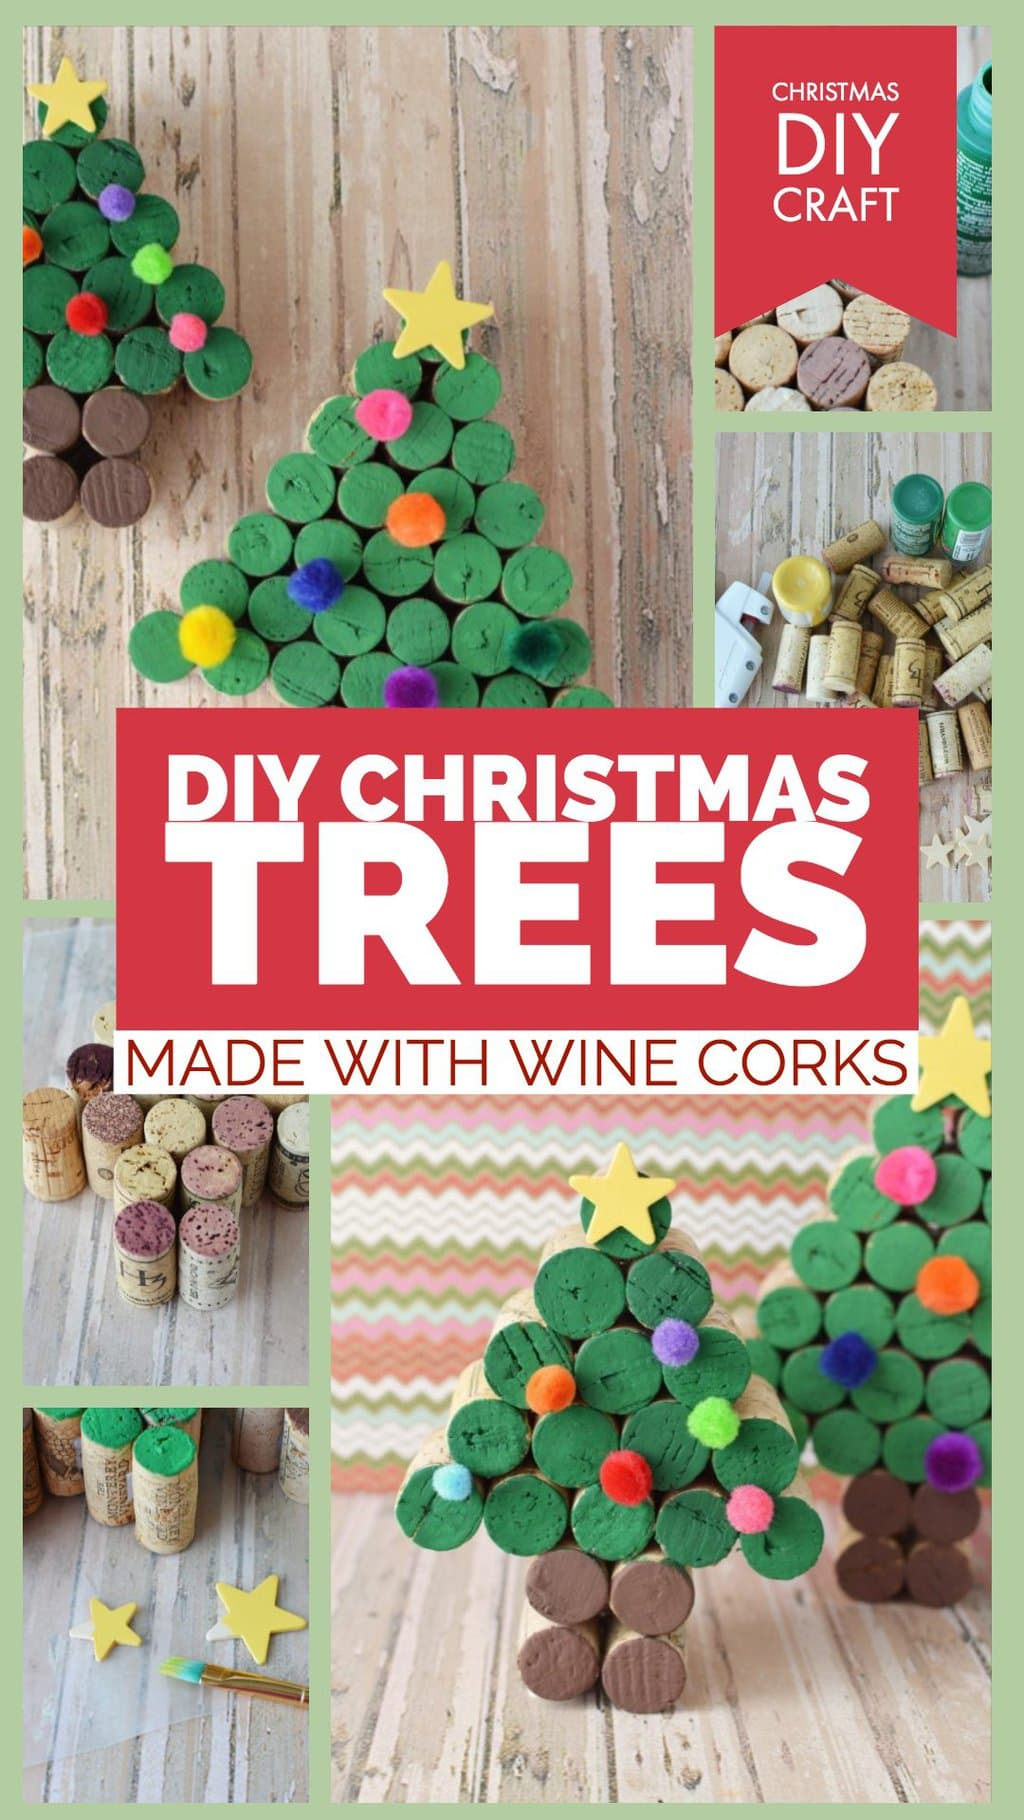 Wine Cork Craft, DIY Wine Cork Craft for Christmas, Christmas Trees made out of wine corks